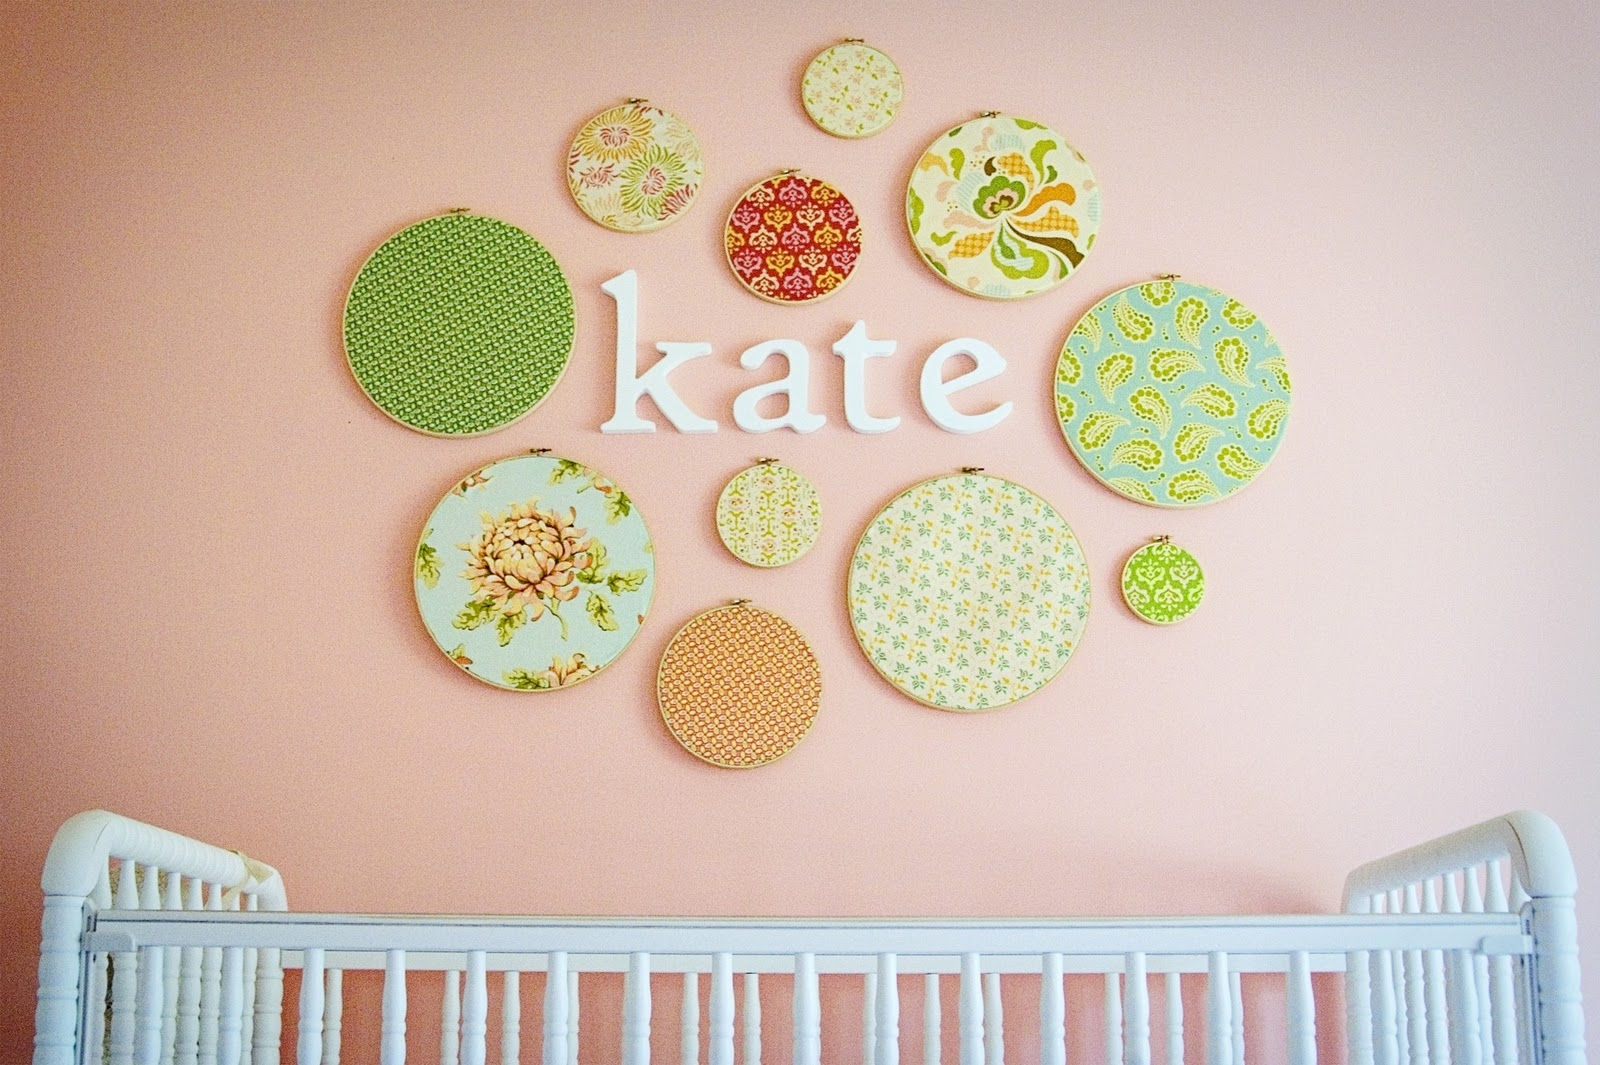 What's All The Hoopla About? – Project Nursery Intended For Most Up To Date Baby Room Canvas Wall Art (View 12 of 15)